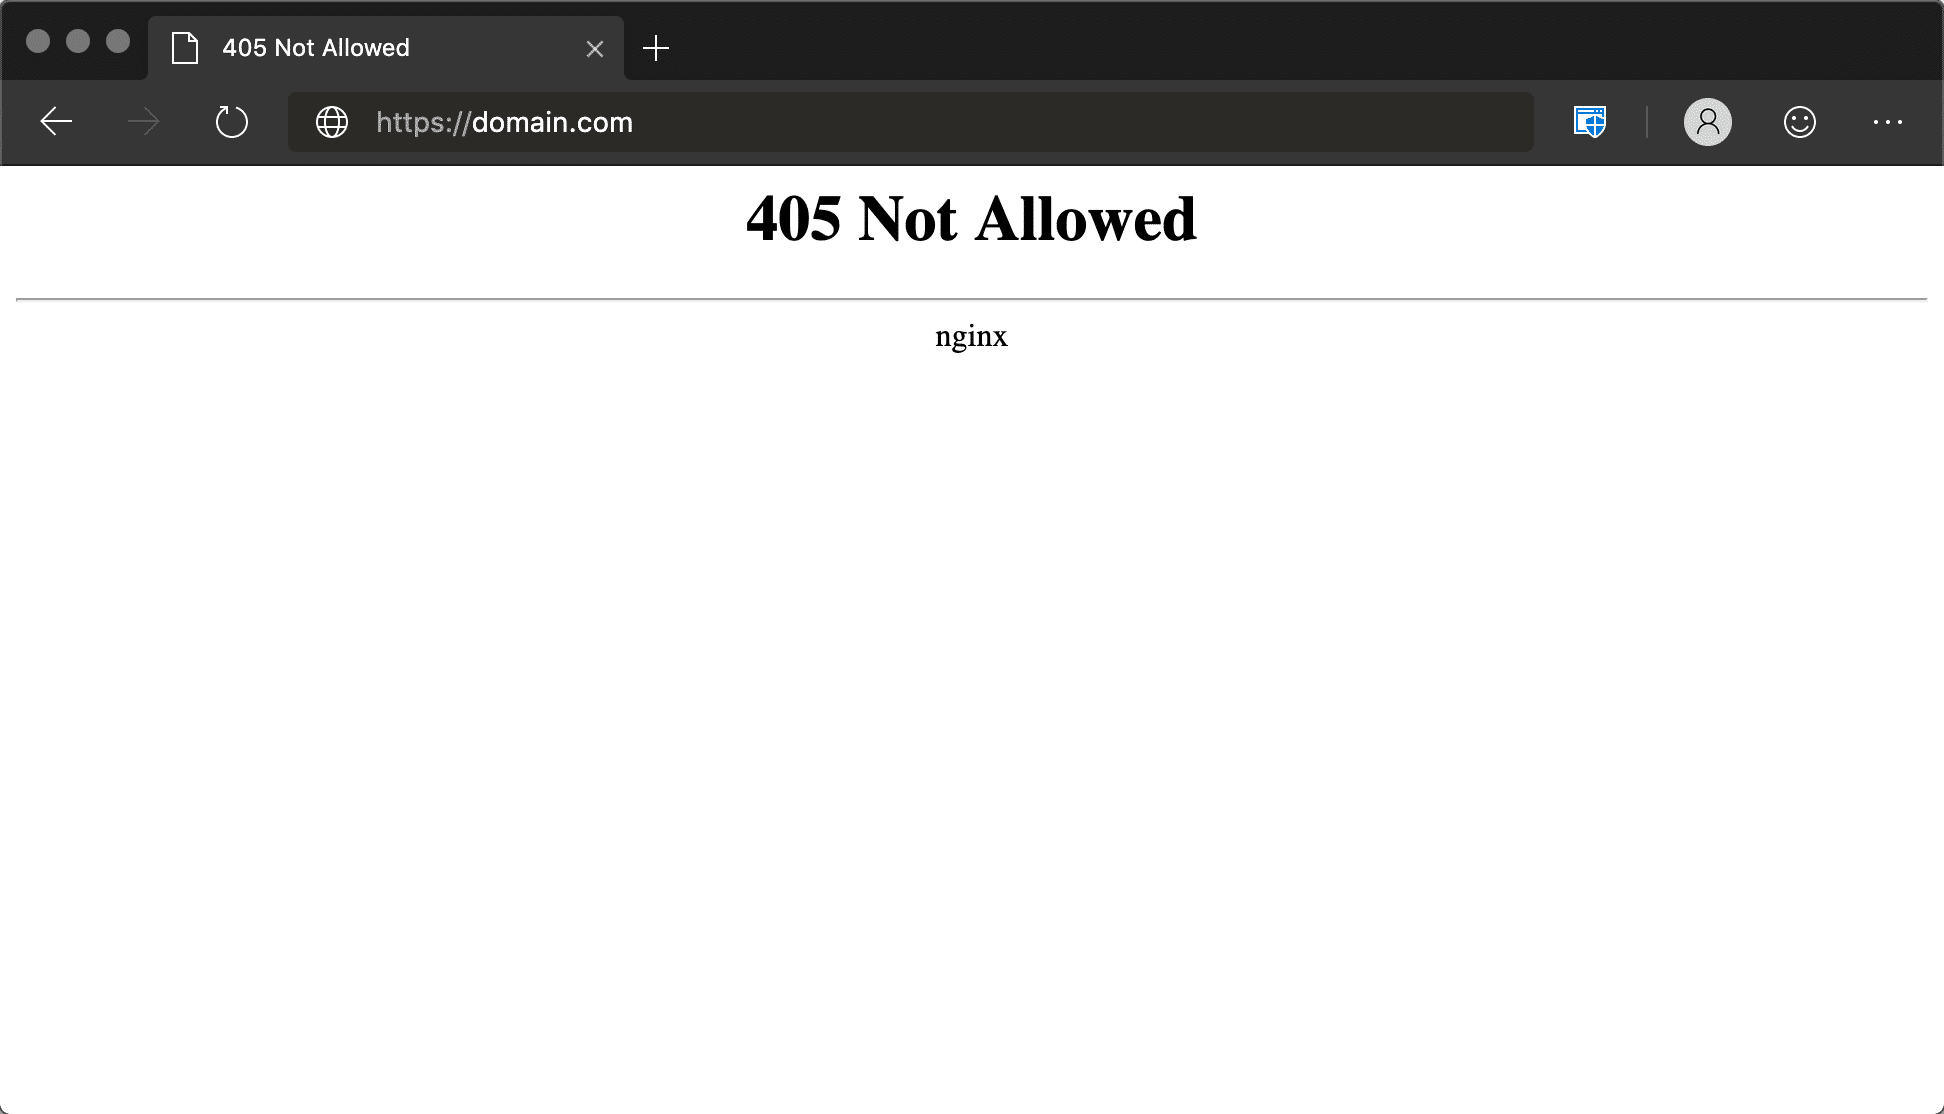 405 Not Allowed Error Nginx in Microsoft Edge